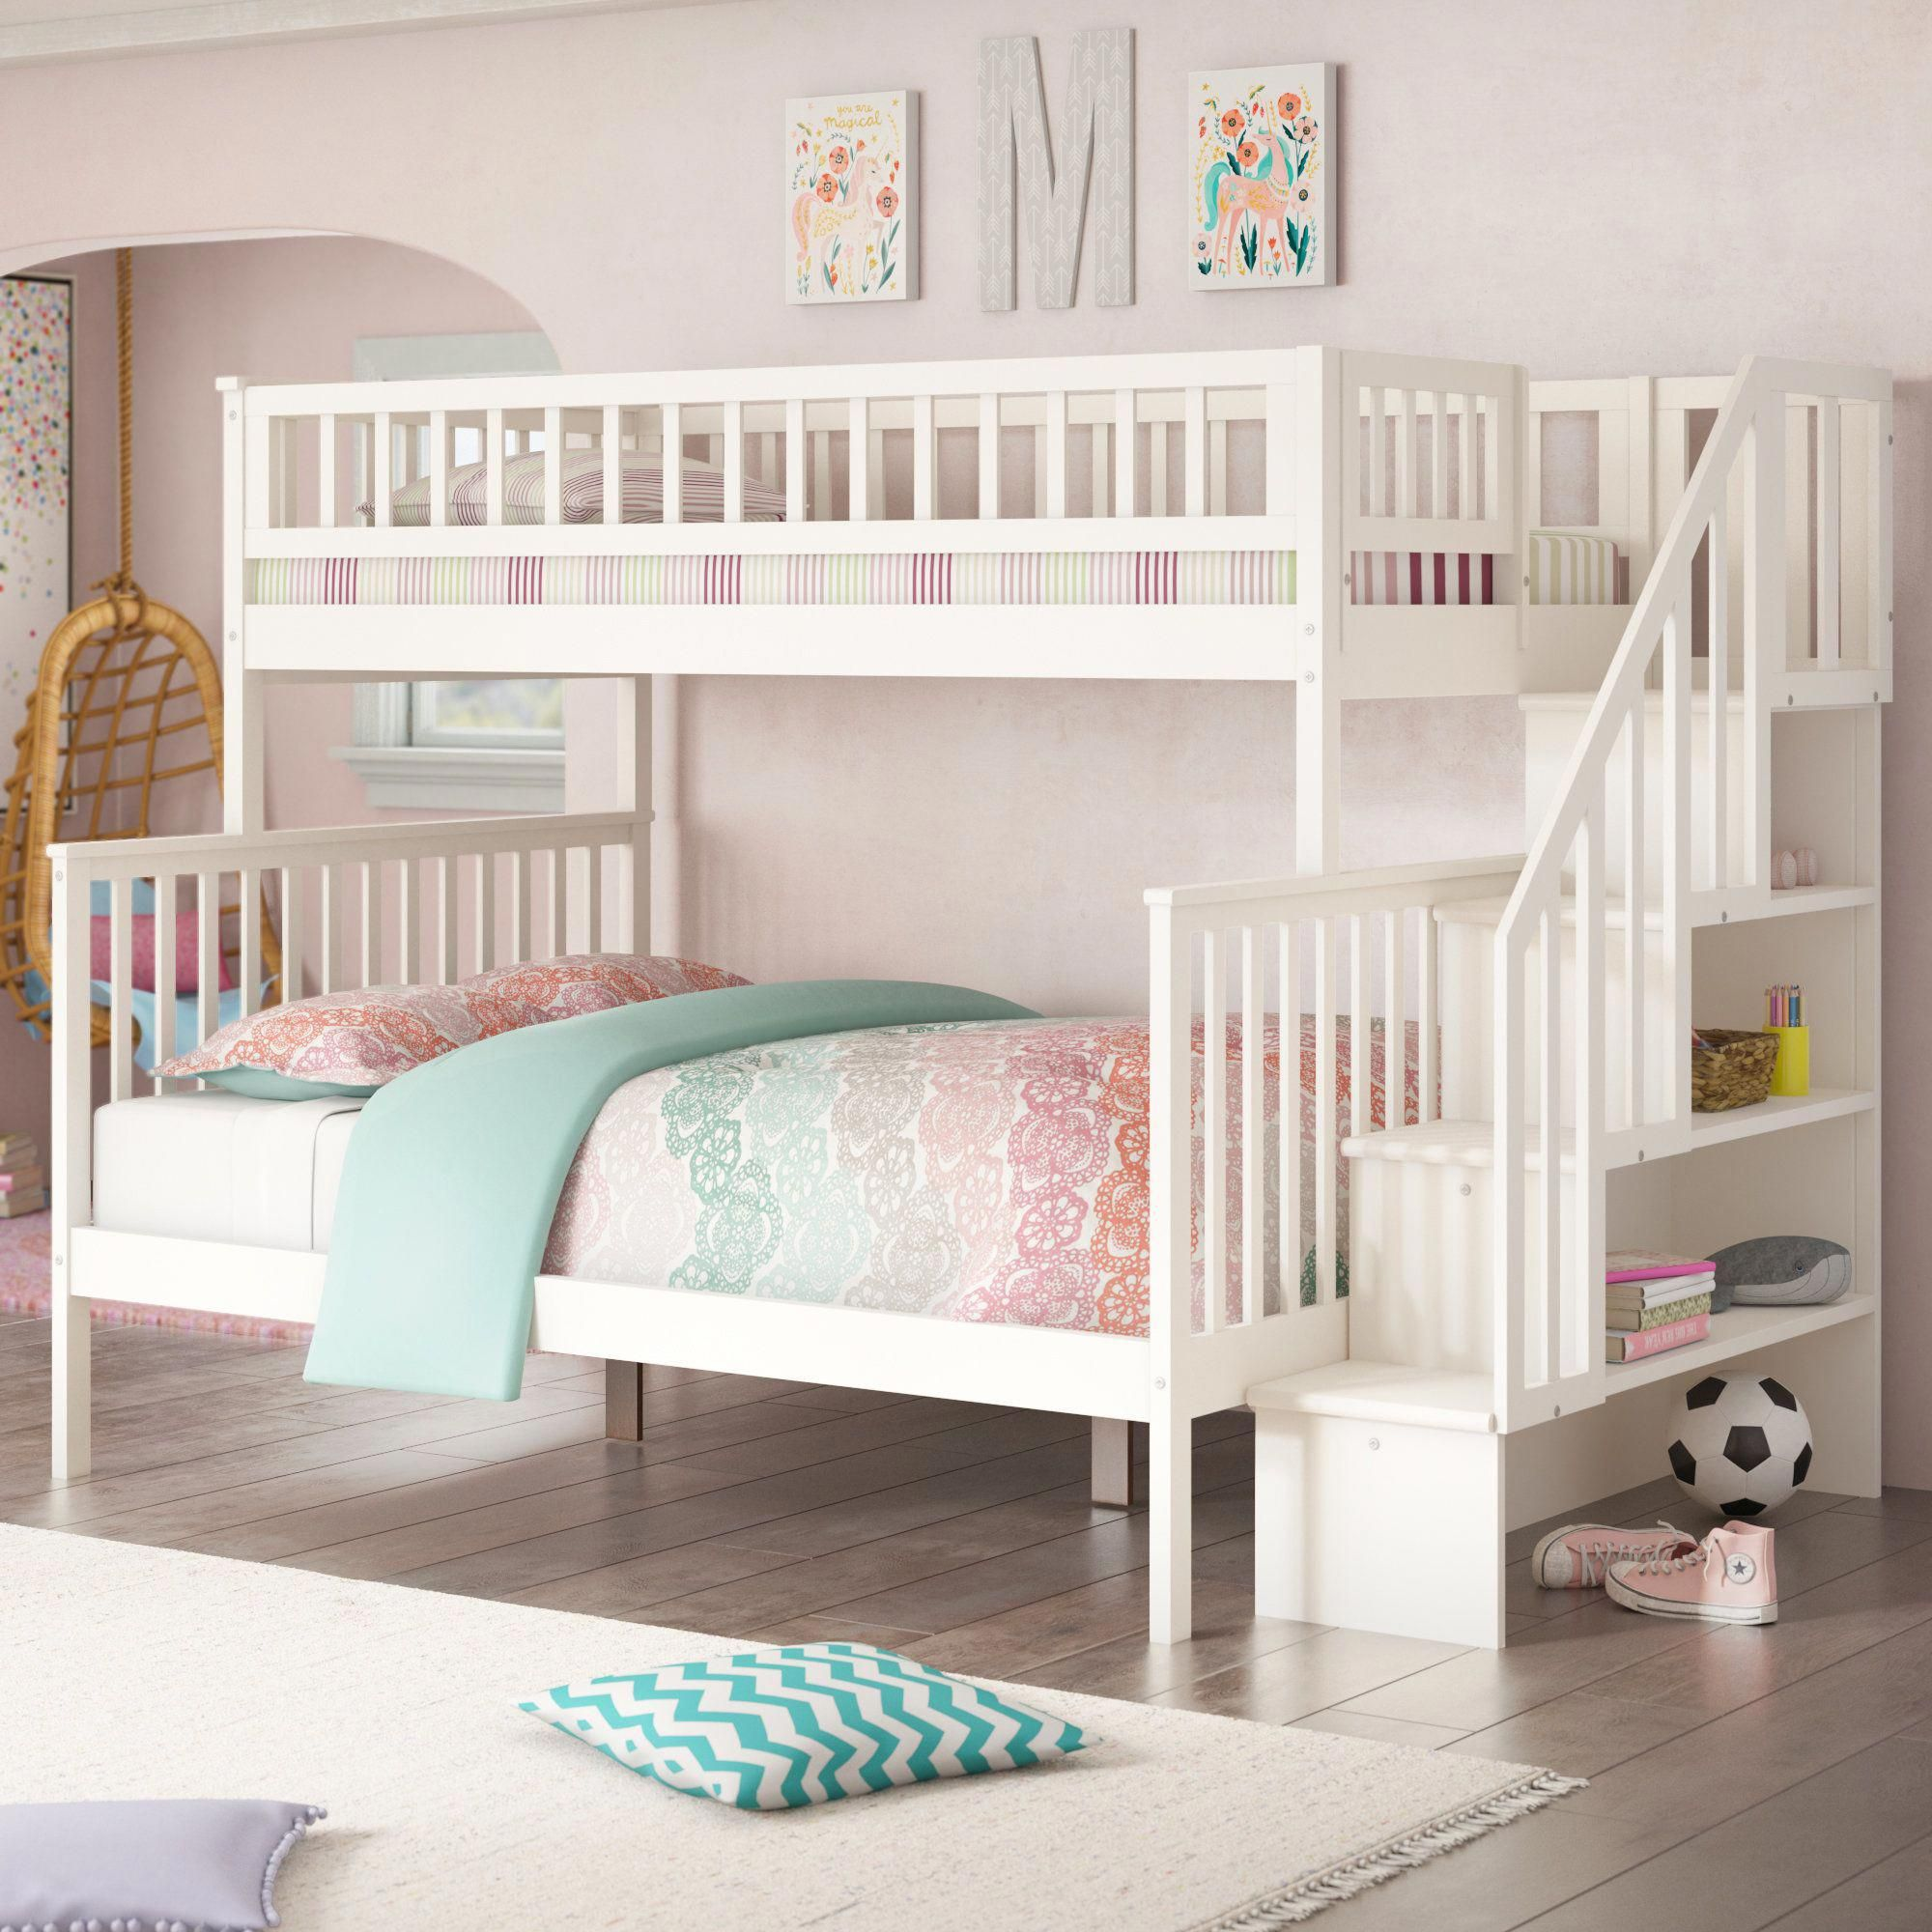 Twin Over Full Bunk Bed Bed For Girls Room Kids Bunk Beds Girls Bunk Beds